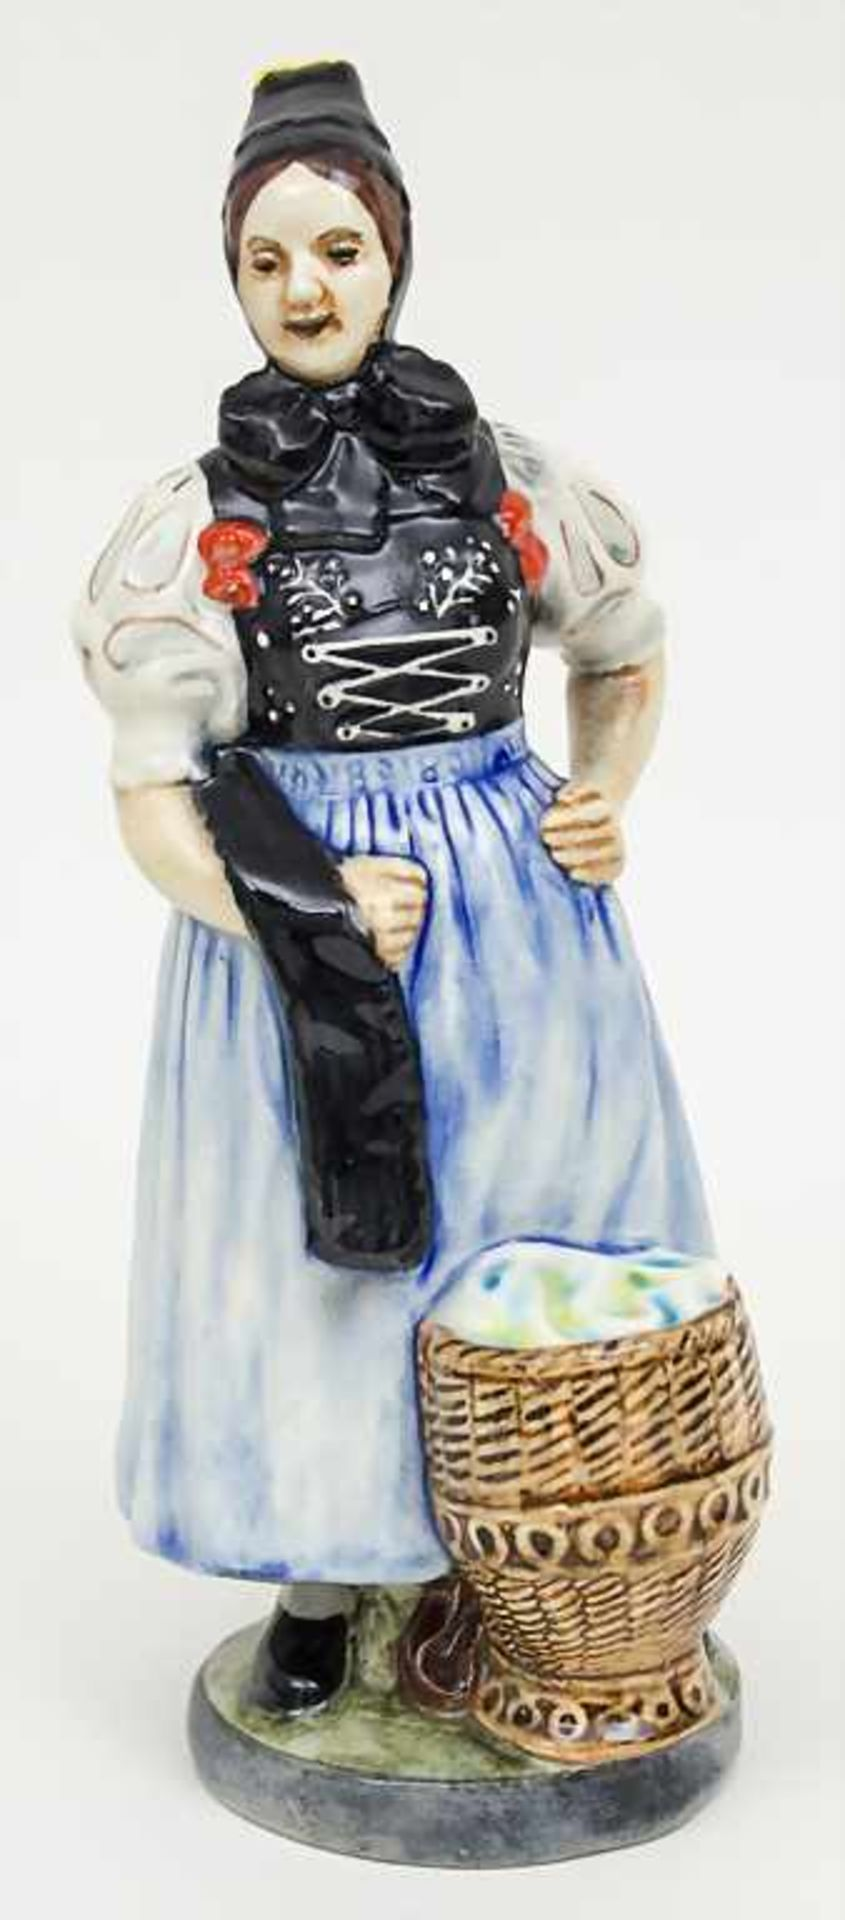 Trachtenfigur 'Tribergerin' / A costumed woman from the Black Forest, Karlsruher Majolika, um 1940